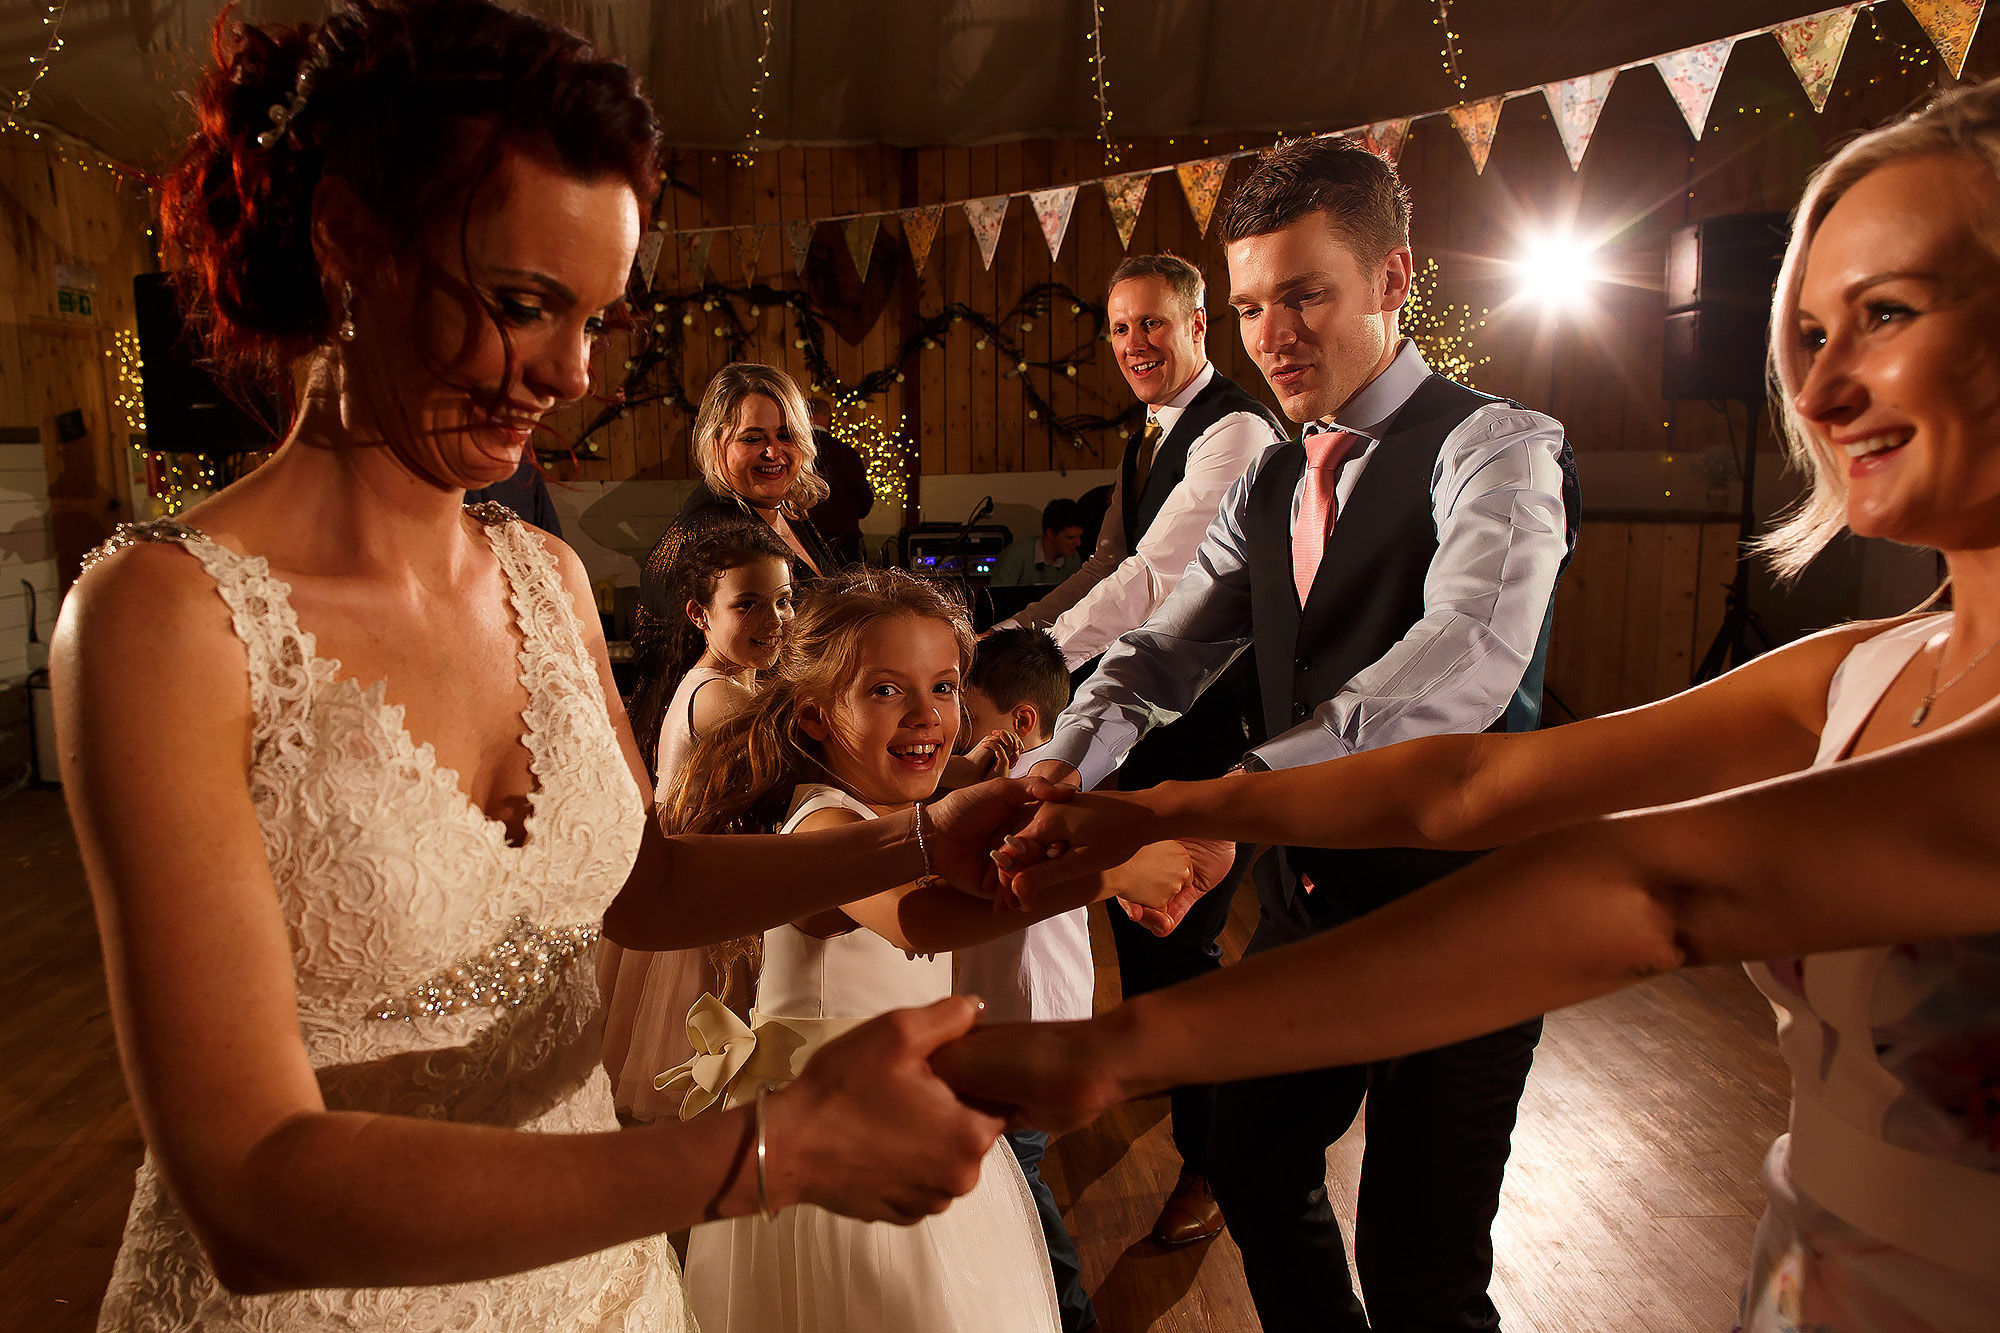 Bride ceilidh dancing with wedding guests | Summer wedding at Wellbeing Farm - Toni Darcy Photography